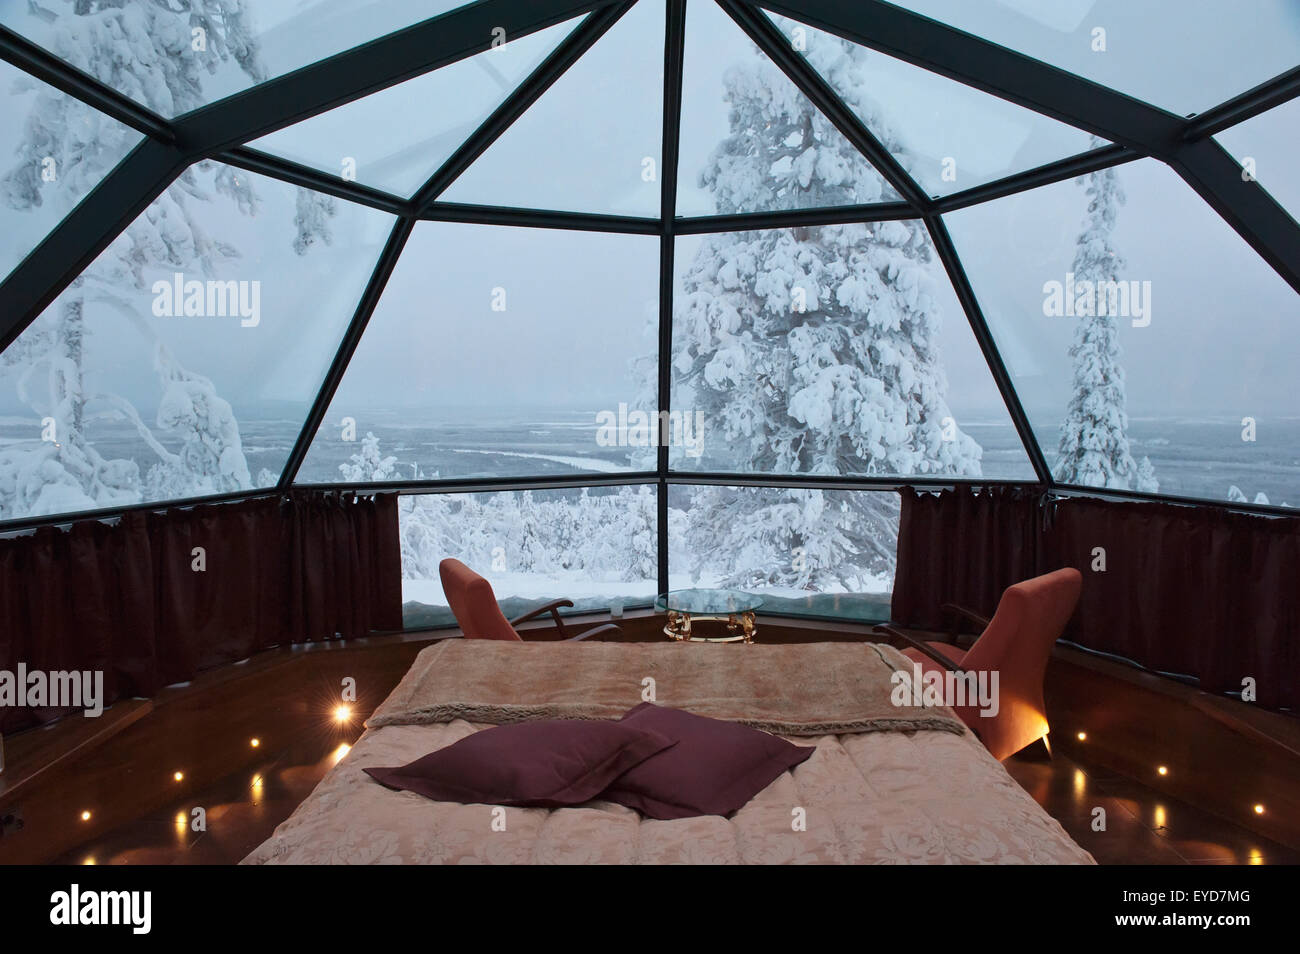 Glass Roofed Igloo Accommodation With A Motorized Rotating Bed At - Rotating bed